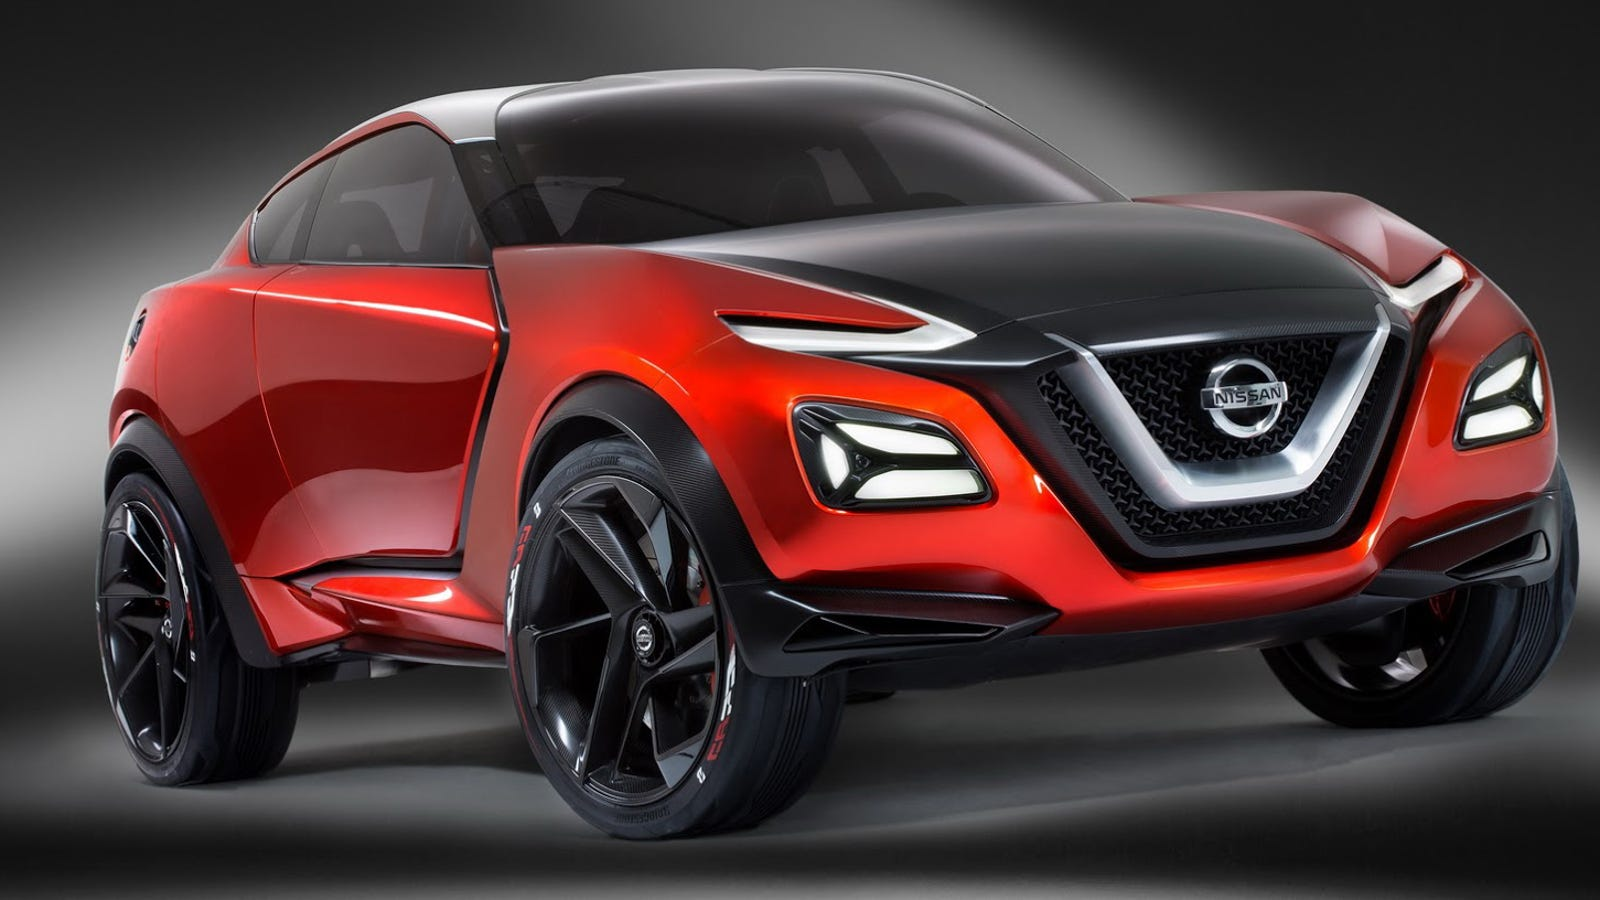 The Nissan Gripz Concept Is A Z-Inspired Crossover That ...